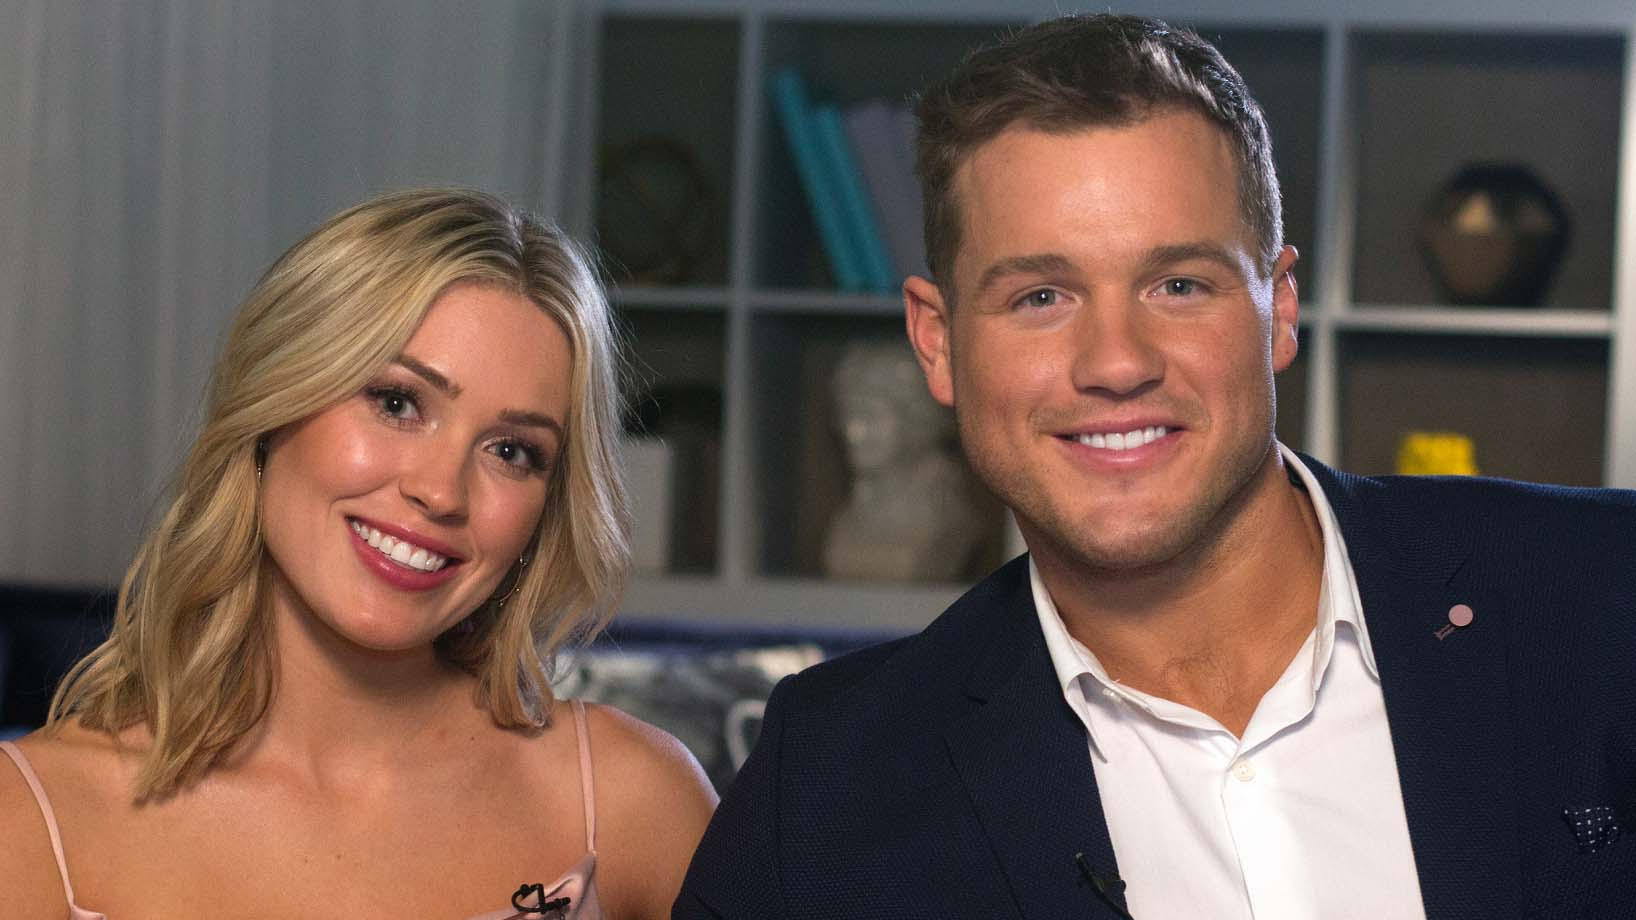 'Bachelor' star Cassie Randolph files for restraining order against ex Colton Underwood: report – Fox News